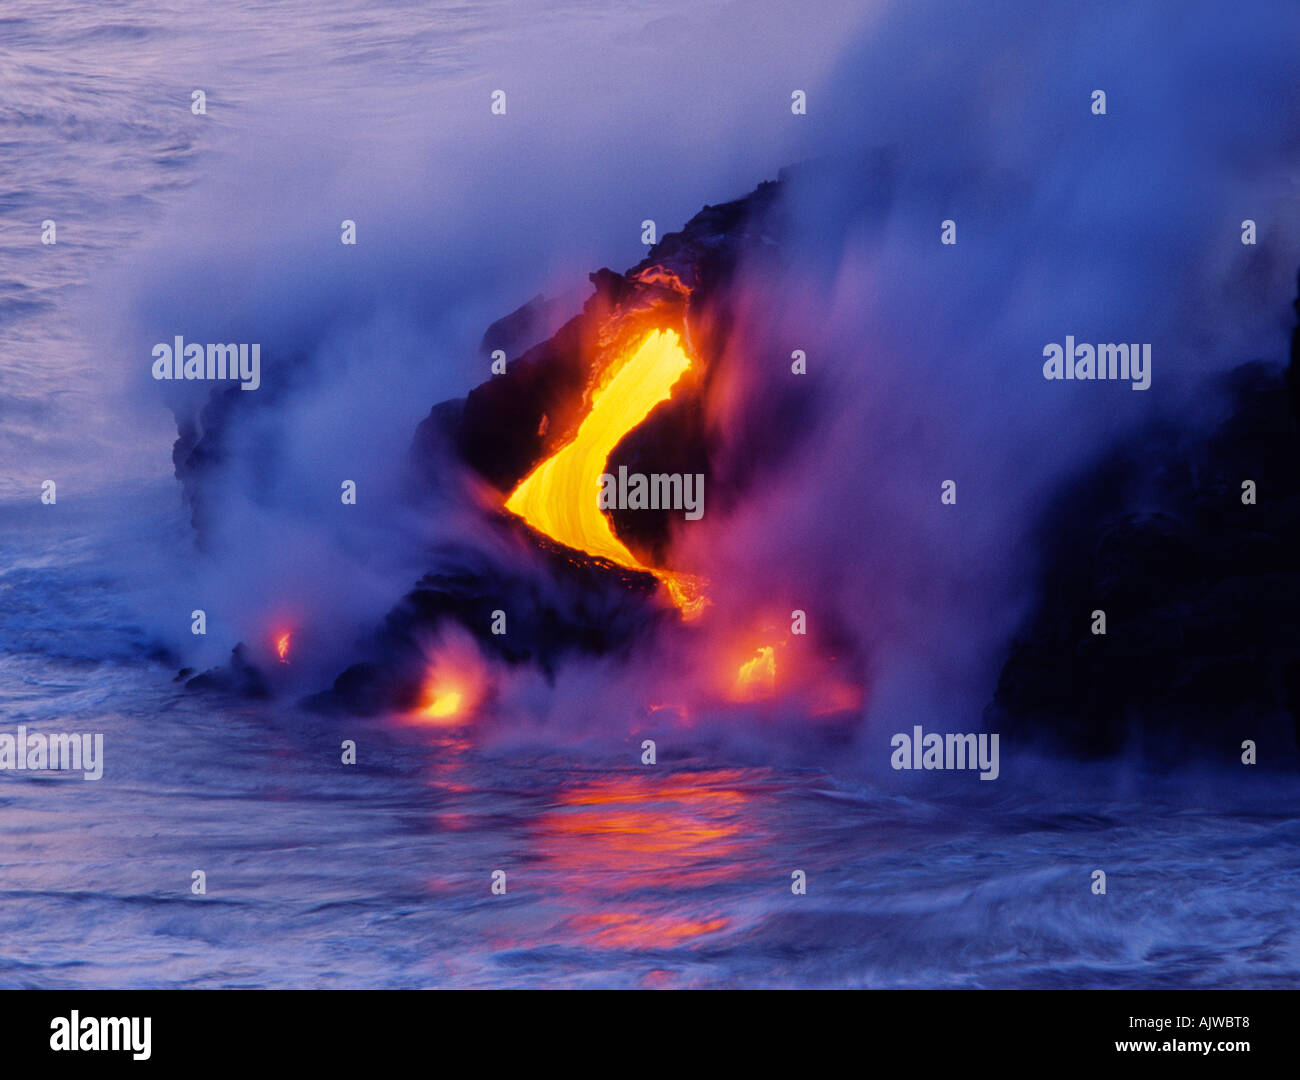 Lava flowing into the ocean and cooling, Kilauea Volcano, Hawaii - Stock Image